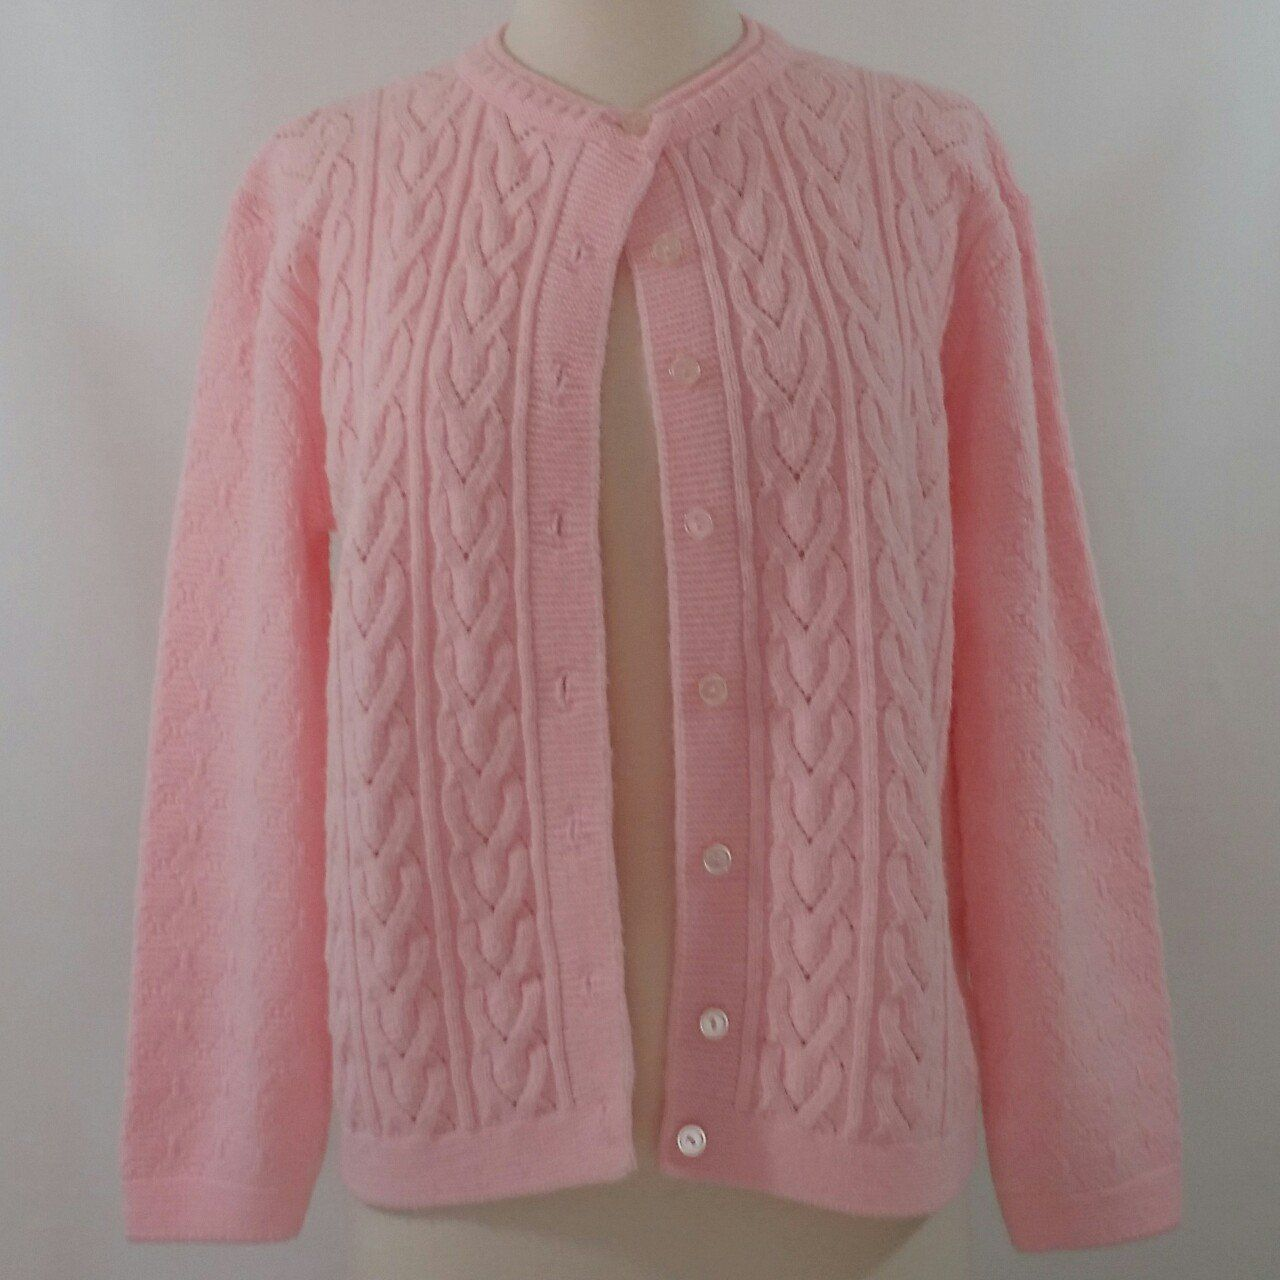 e2bc4f9514a058 The cutest pink knit sweater ever! This sweater is acrylic so the color is  still bright. No holes or stains. Only issue I see is the sizing tag has AP  ...